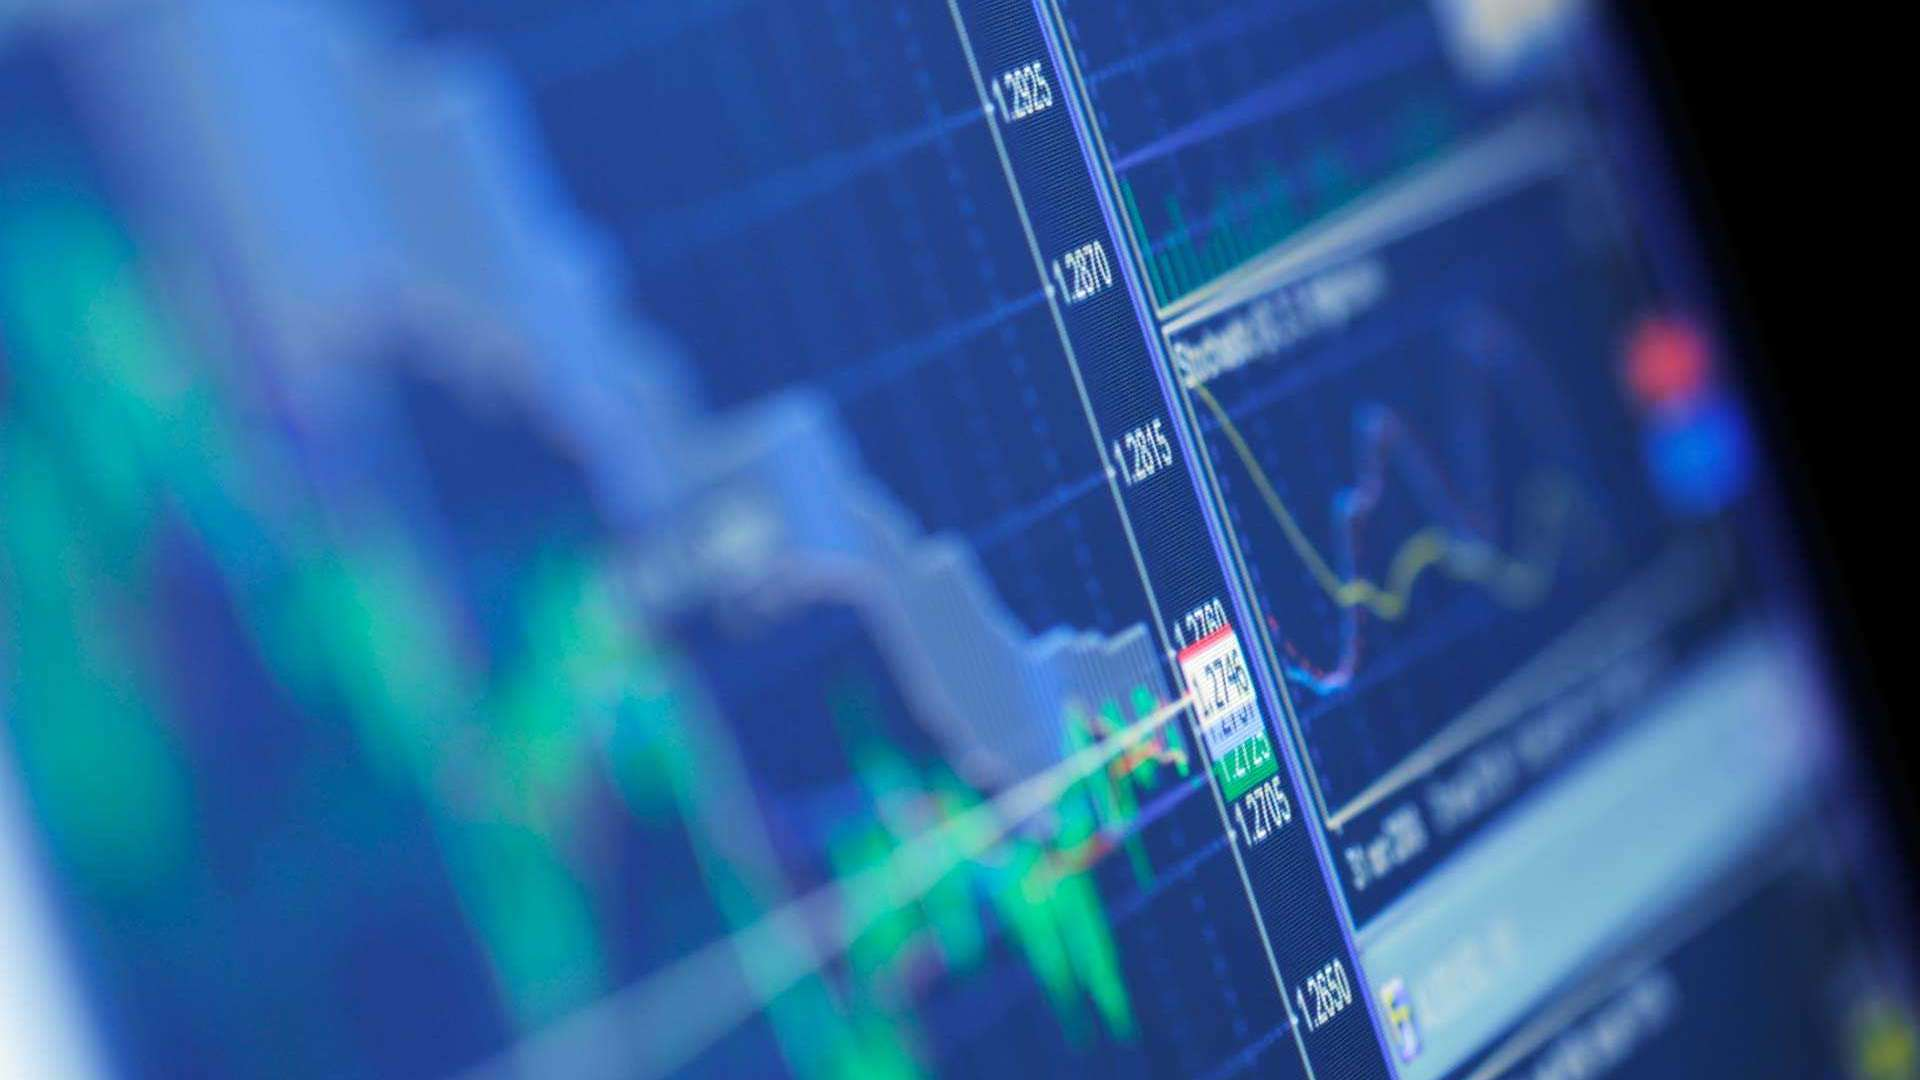 Big Data could remove the financial barriers that stop innovation